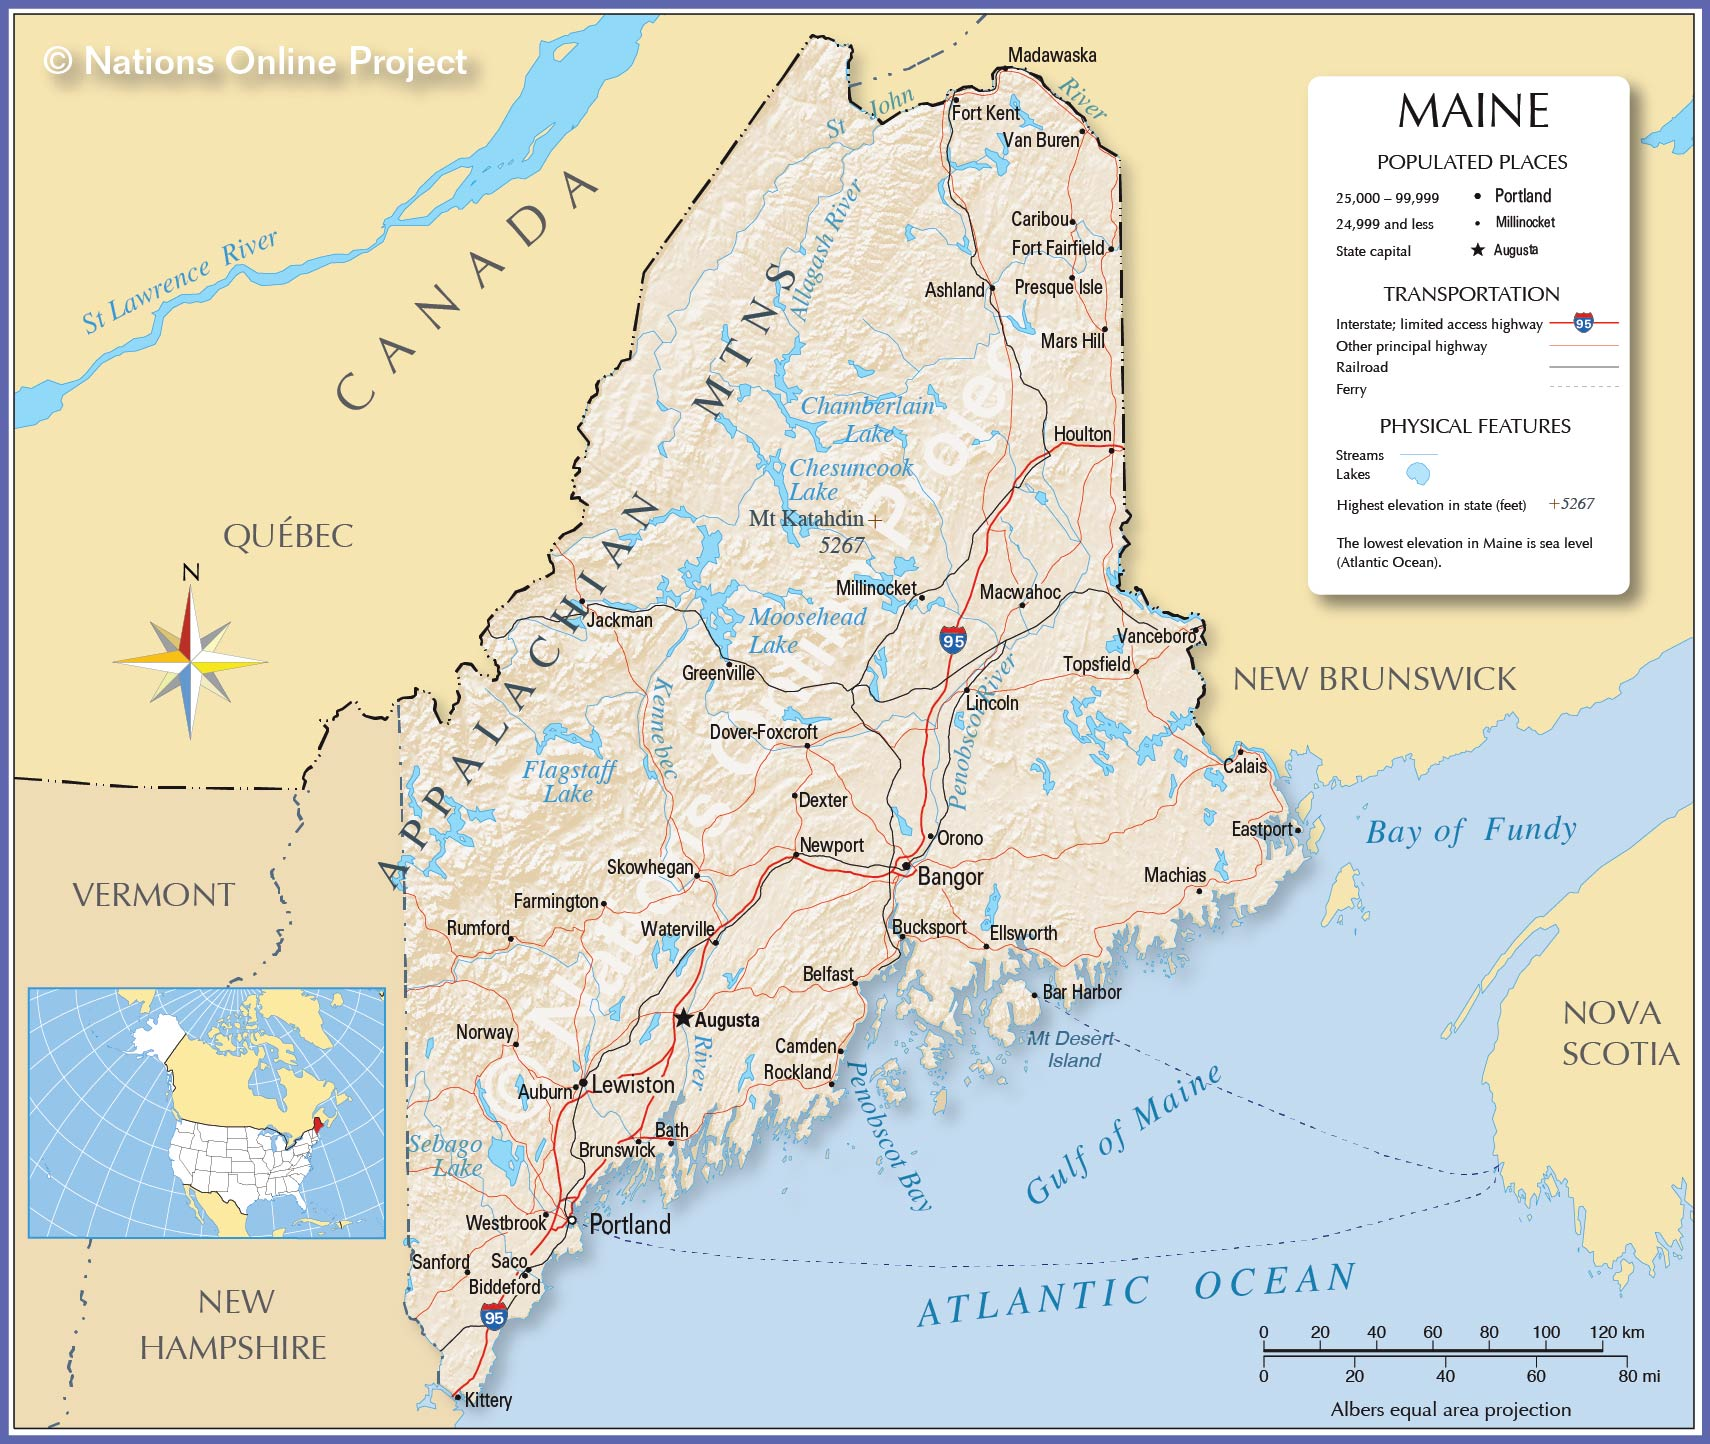 Jefferson Maine Map.Reference Maps Of Maine Usa Nations Online Project